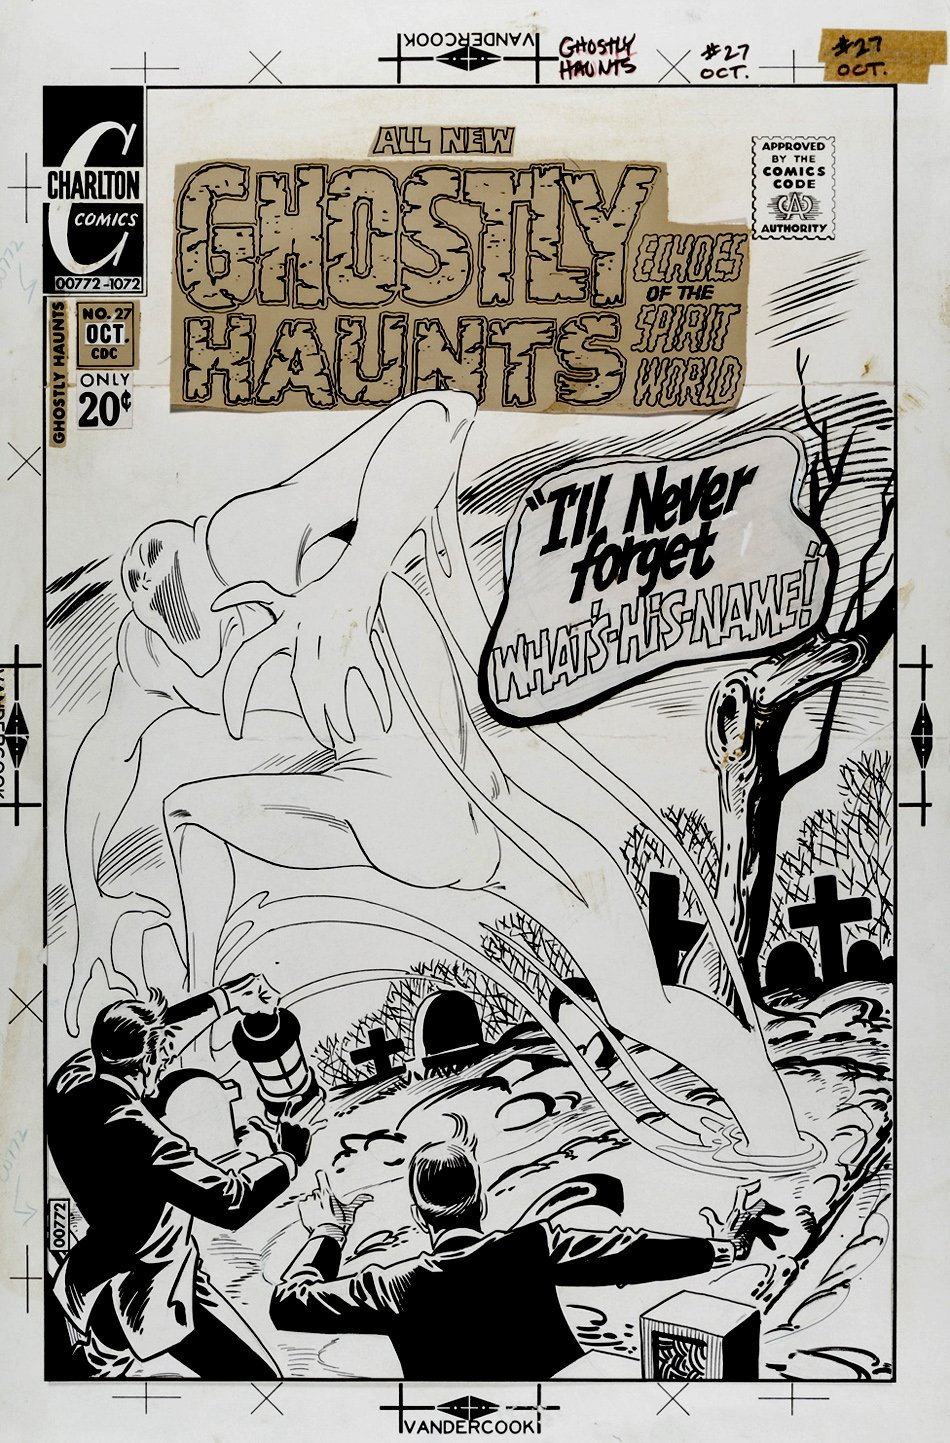 Ghostly Haunts #27 Cover (Large Art) 1972